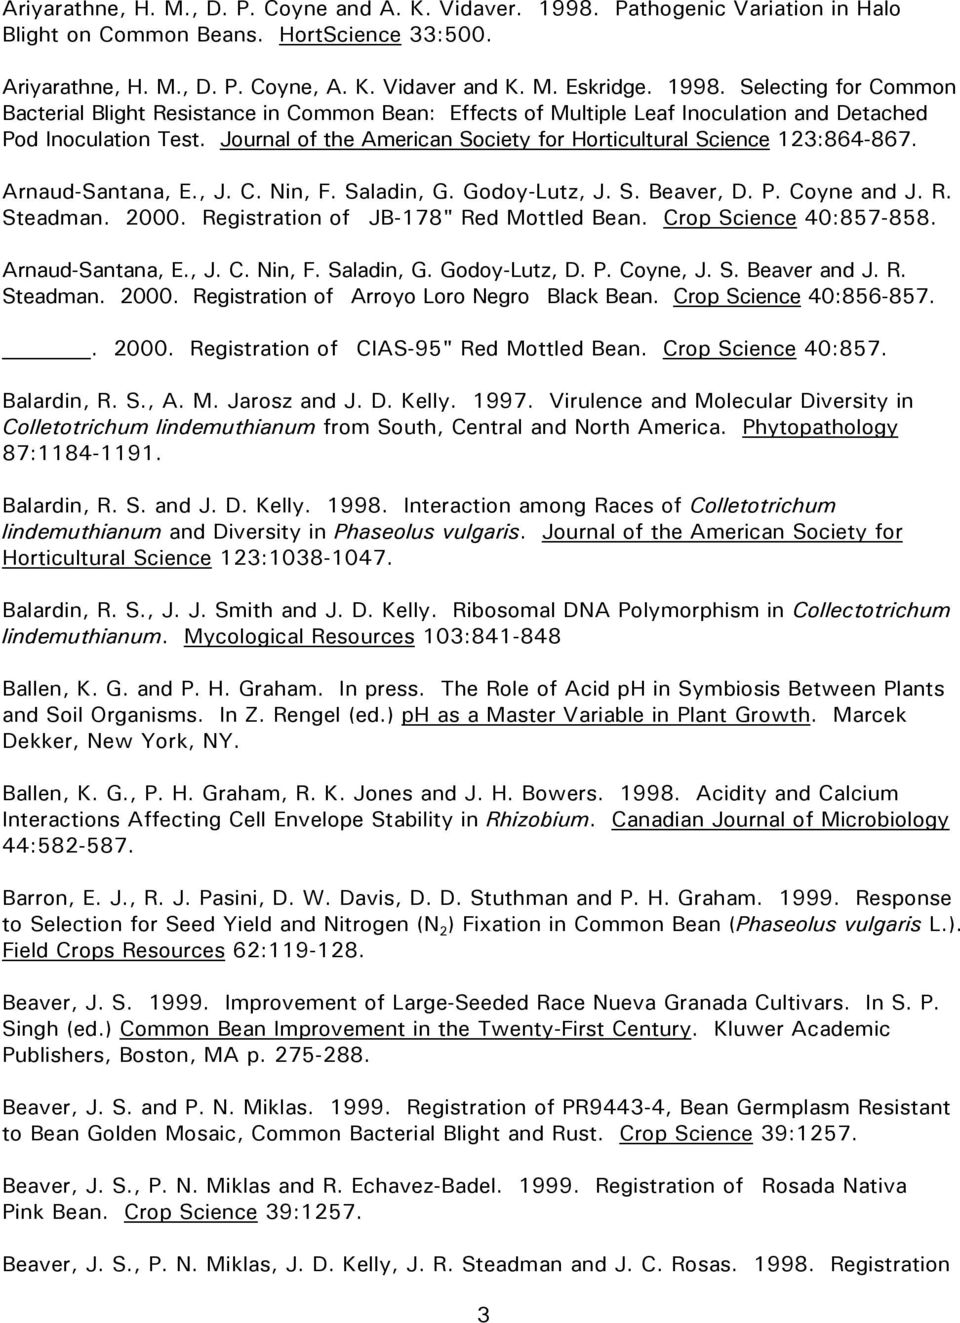 Journal of the American Society for Horticultural Science 123:864-867. Arnaud-Santana, E., J. C. Nin, F. Saladin, G. Godoy-Lutz, J. S. Beaver, D. P. Coyne and J. R. Steadman. 2000.